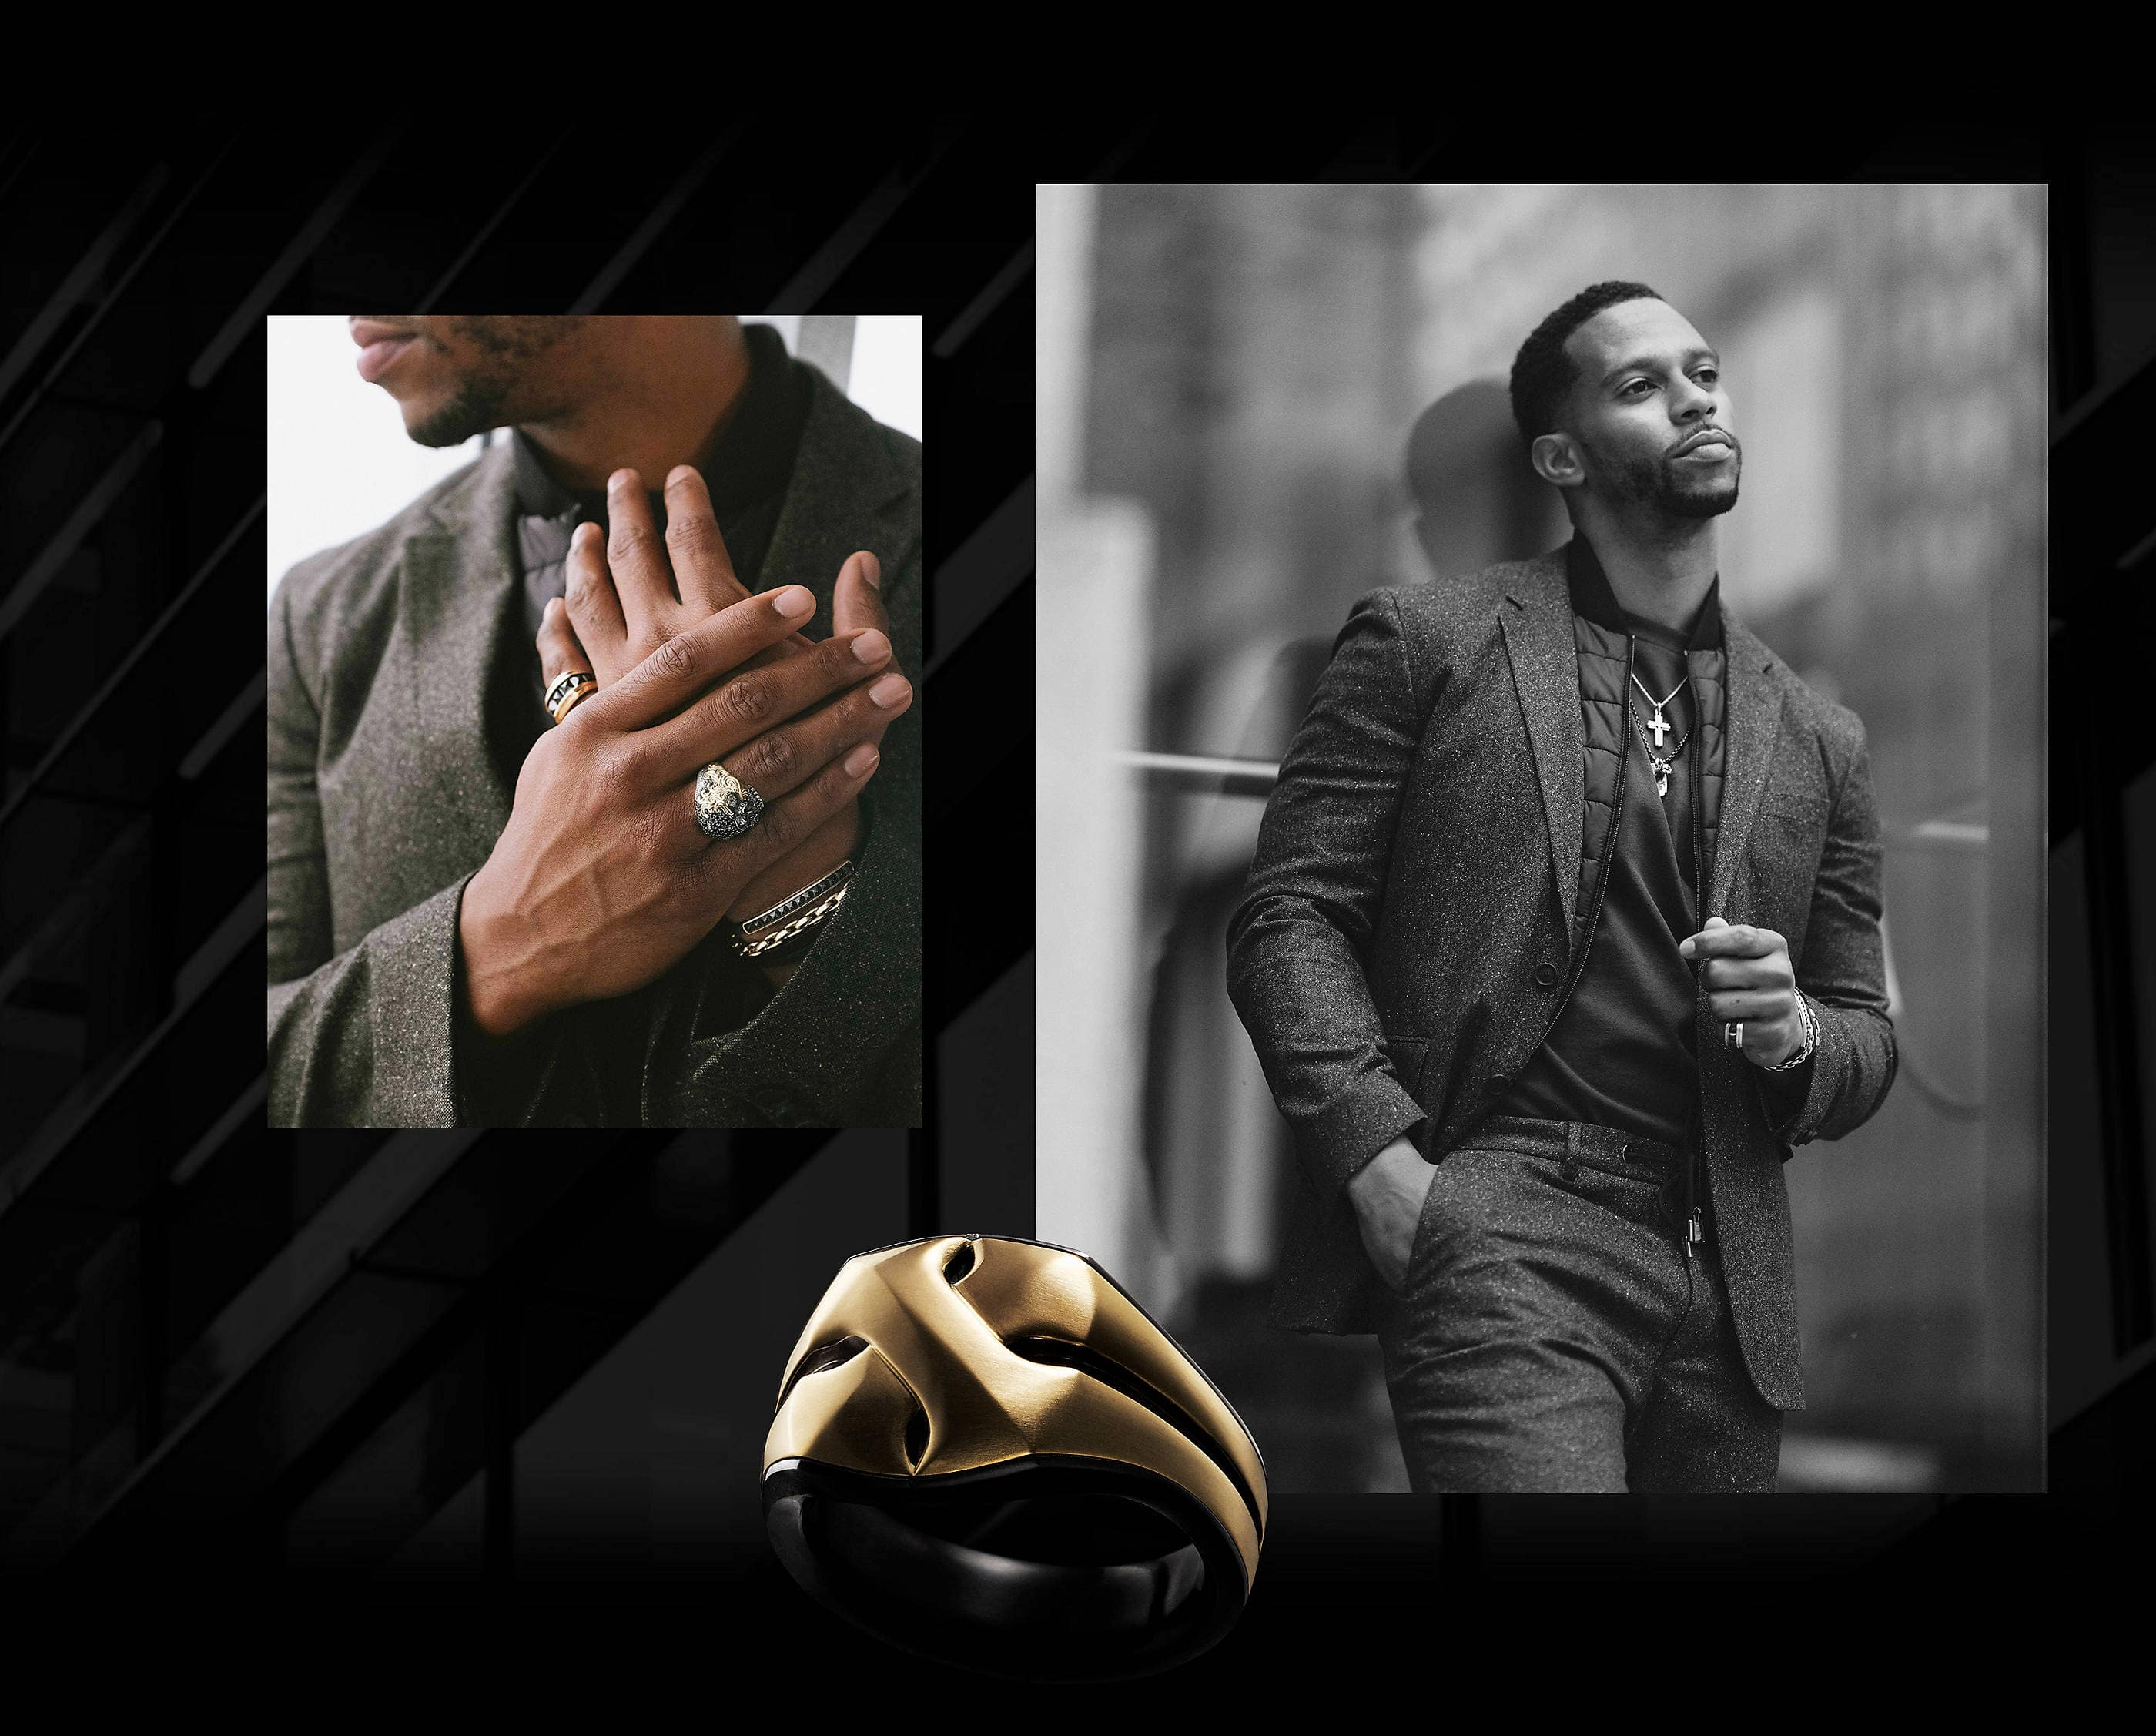 A David Yurman men's Armory signet ring in black titanium with an 18K yellow gold overlay. In both photos, Cruz wears a grey suit, a black vest underneath and a black t-shirt with two David Yurman men's necklaces strung with a cross, a Waves tag and a skull amulet along with three bracelets and a ring on one hand. The jewelry is crafted from sterling silver or 18K yellow gold with or without forged carbon, black onyx, black titanium, black leather, rubies or black diamonds.